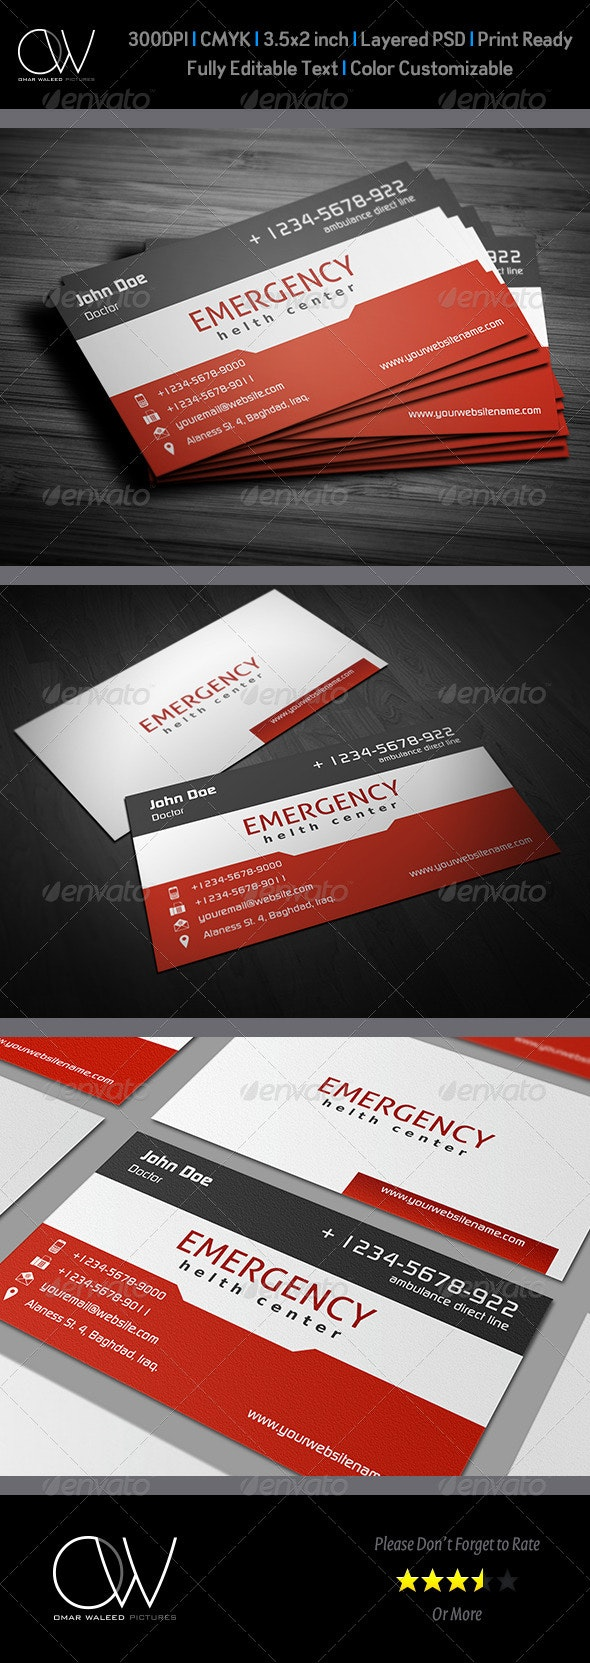 First Aid Business Card Vol.2 - Corporate Business Cards